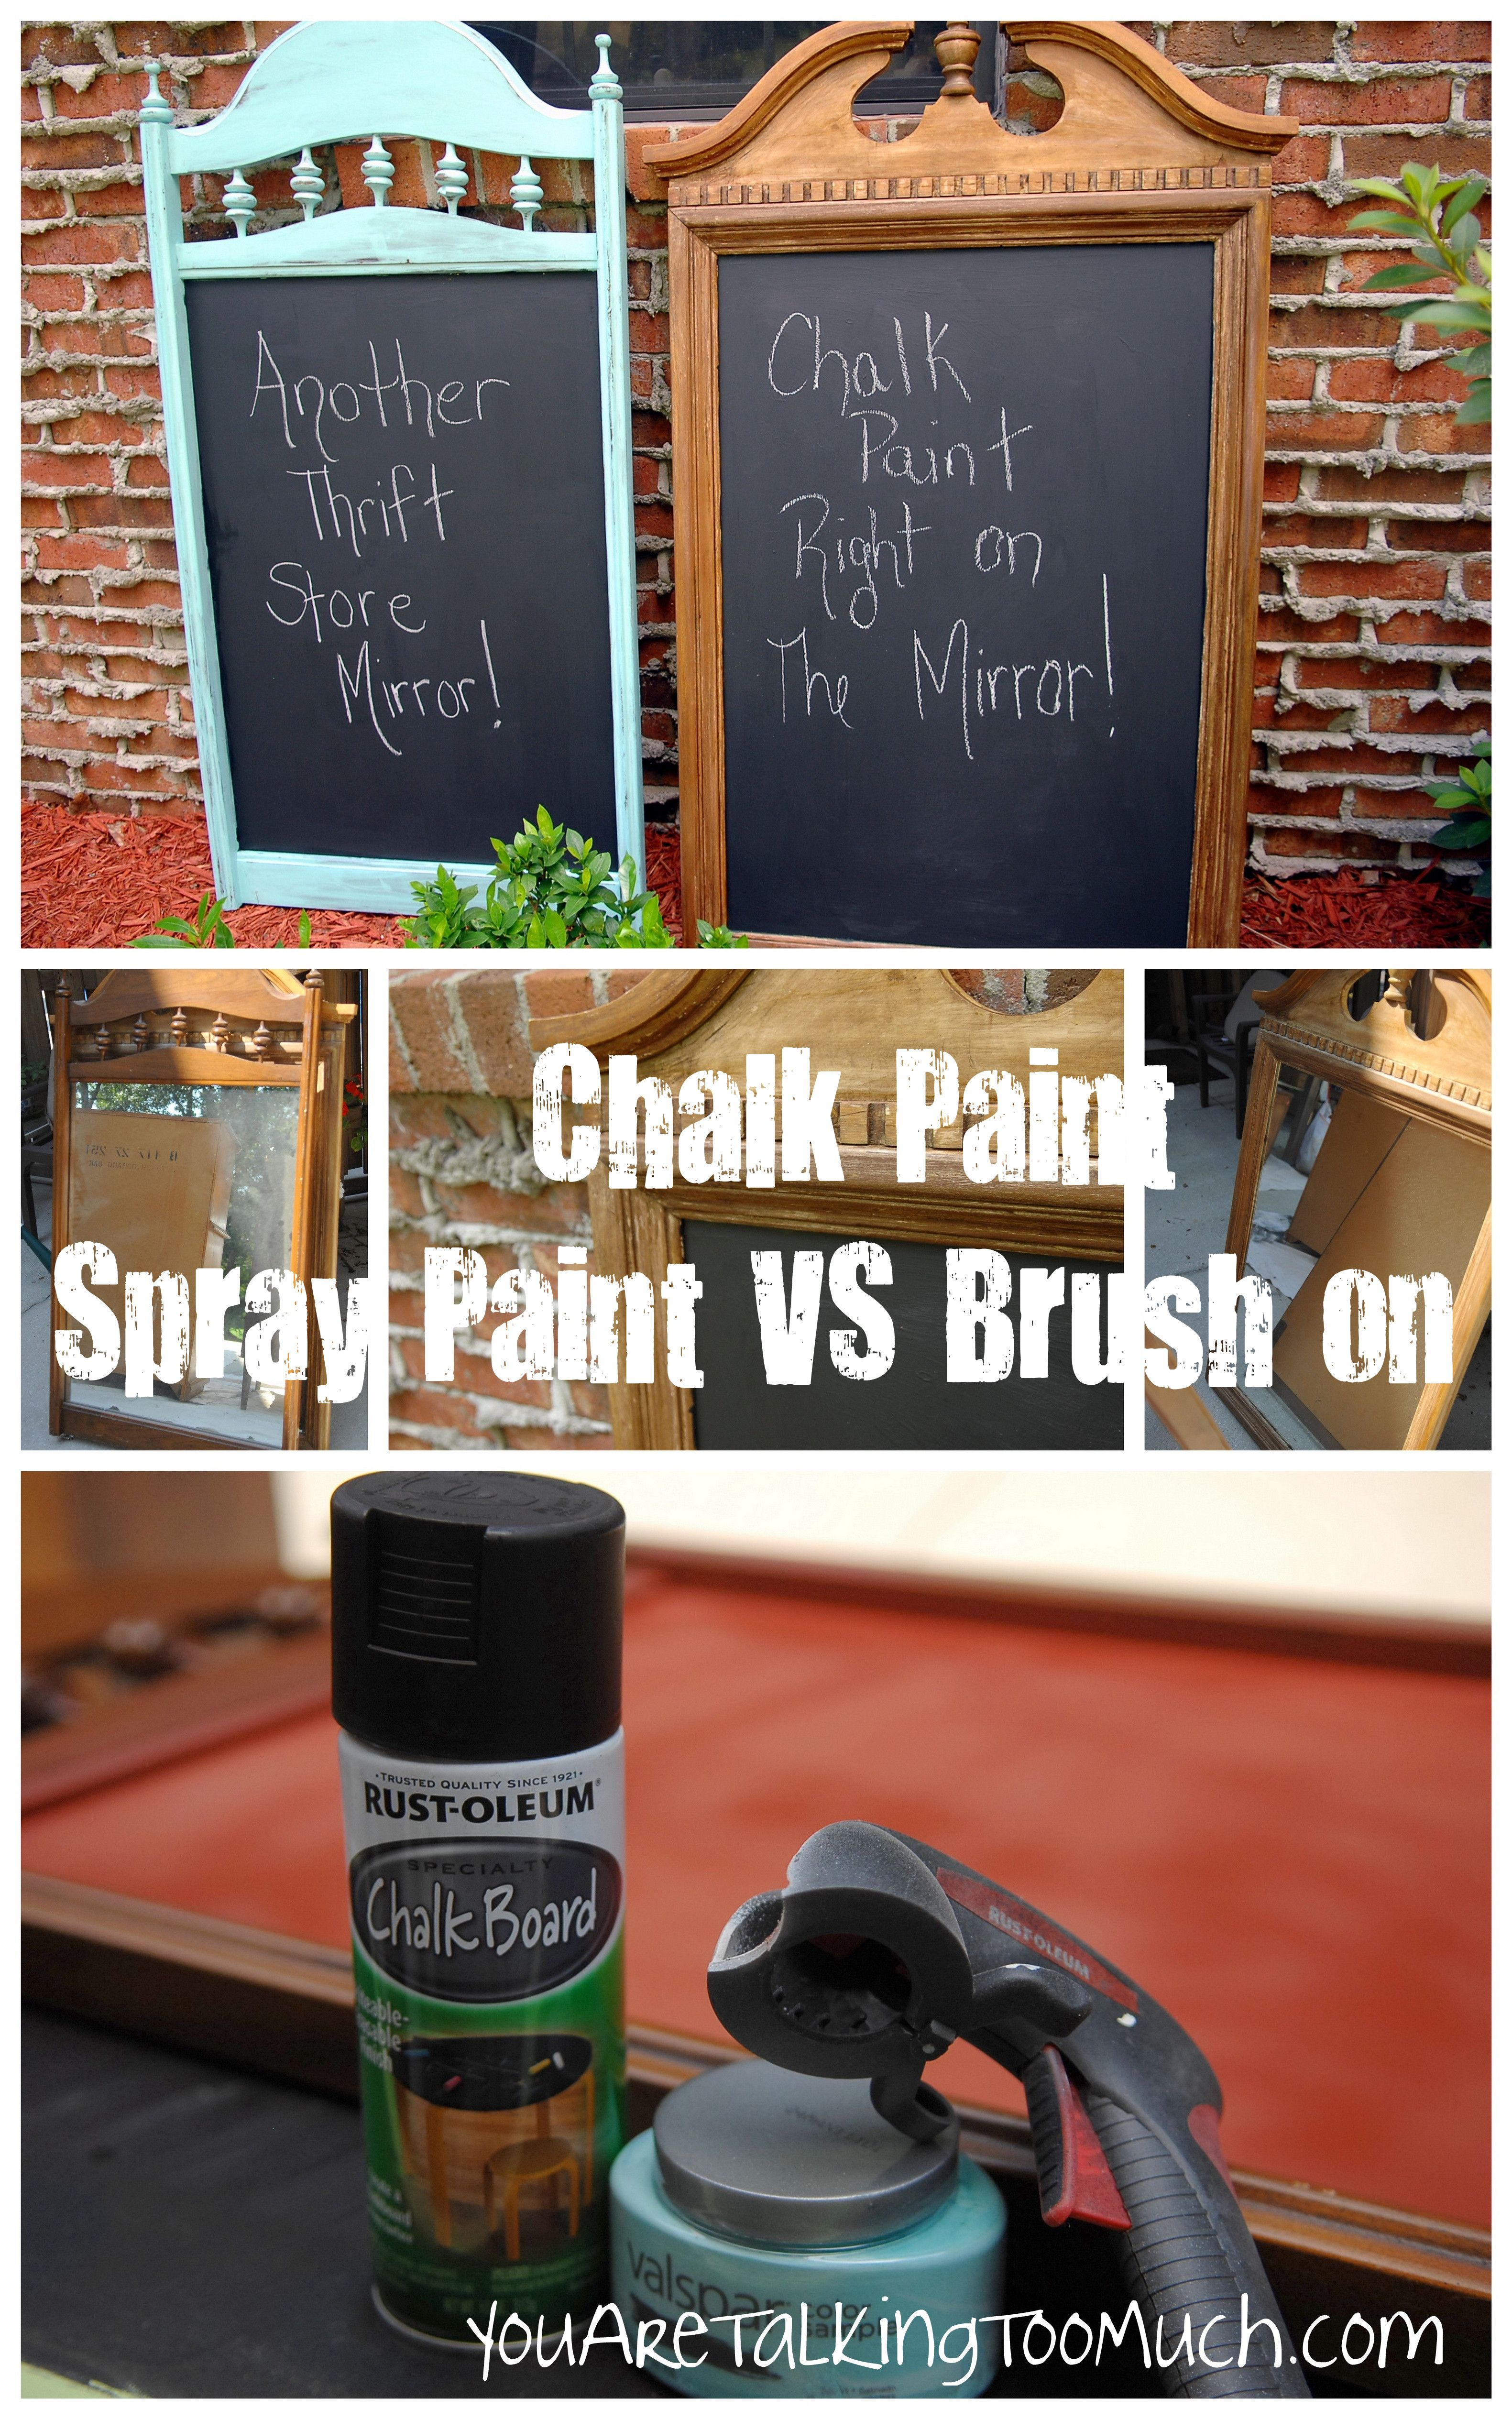 Superb Chalkboard Spray Paint Ideas Part - 3: Chalkboard Right On Mirror And Glass! Spray Paint Chalkboard Paint Vs Brush  Paint!